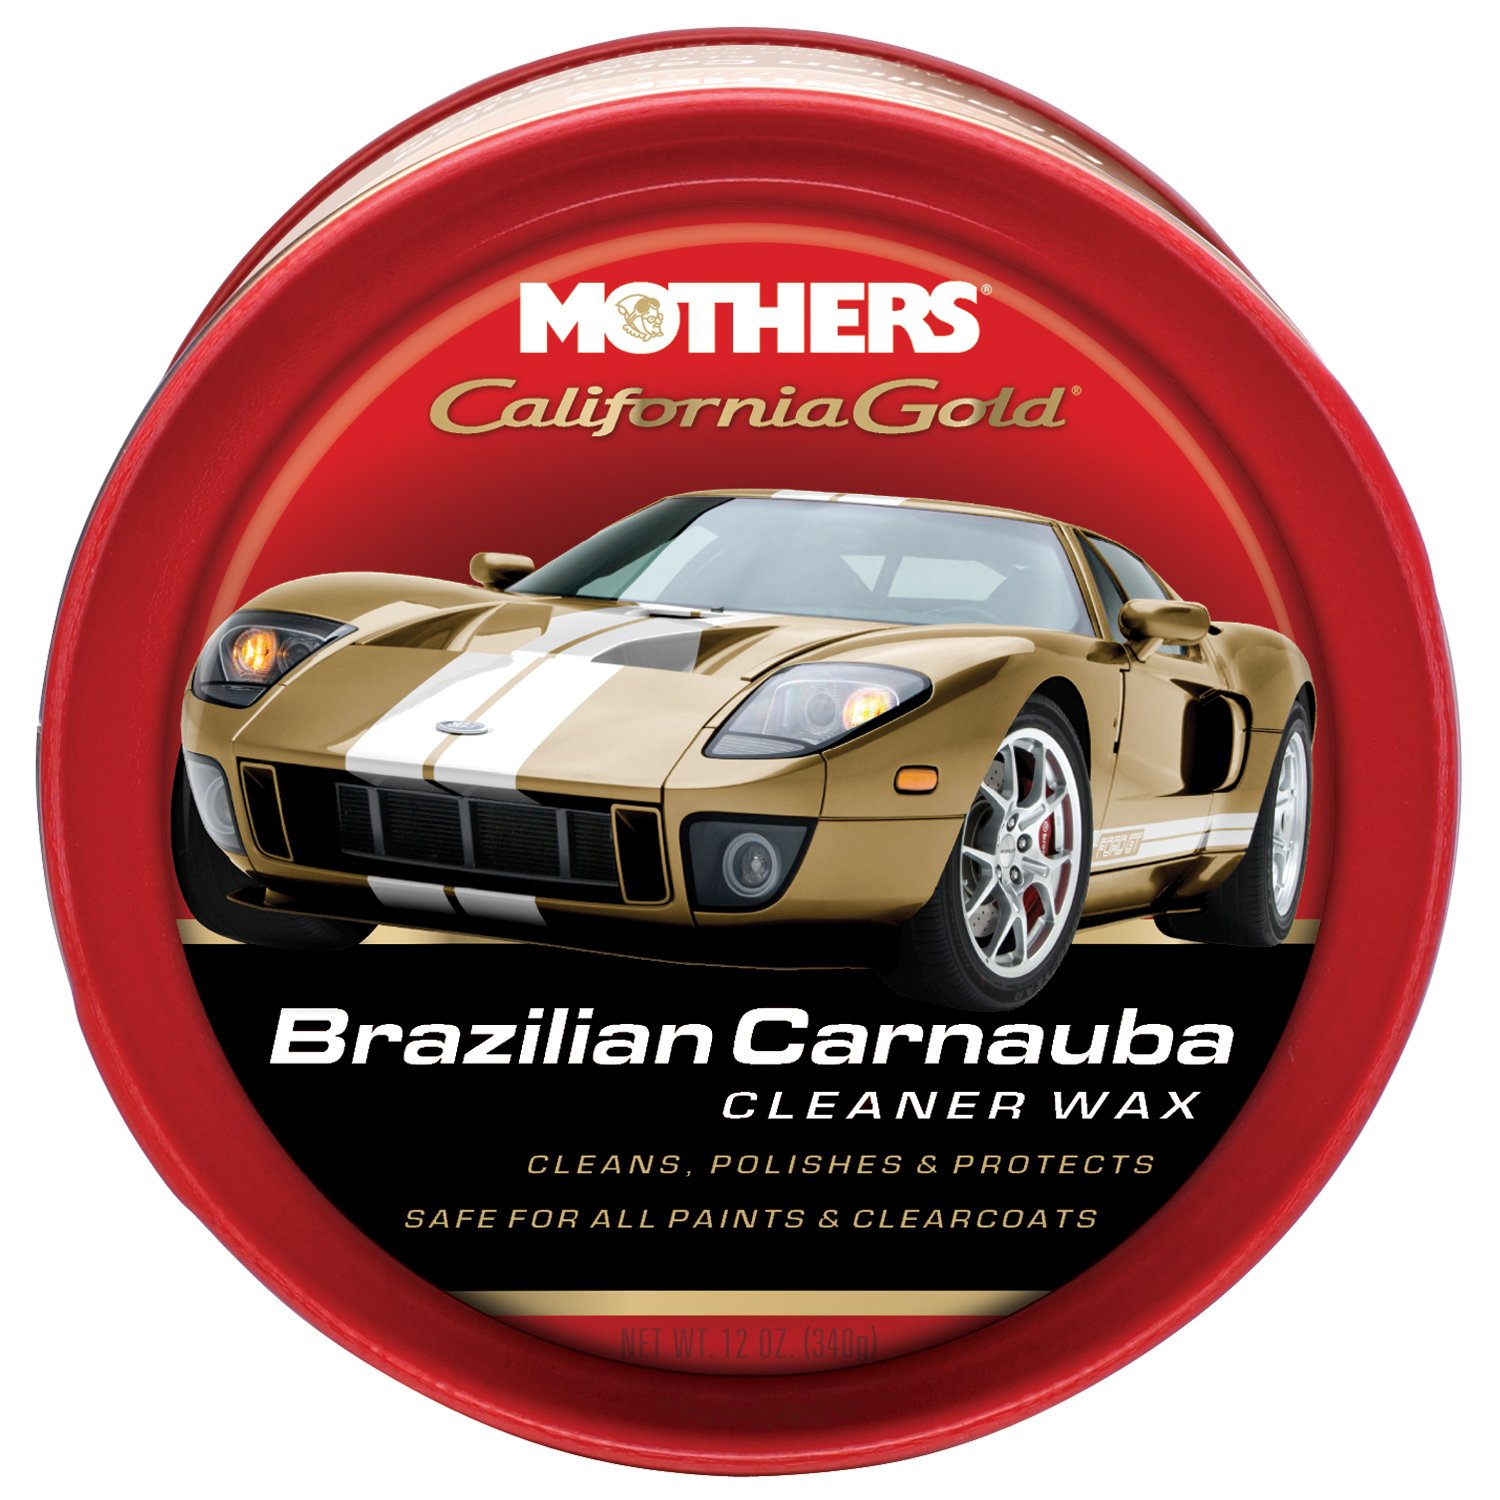 Mothers California Gold Brazilian Carnauba top car wax